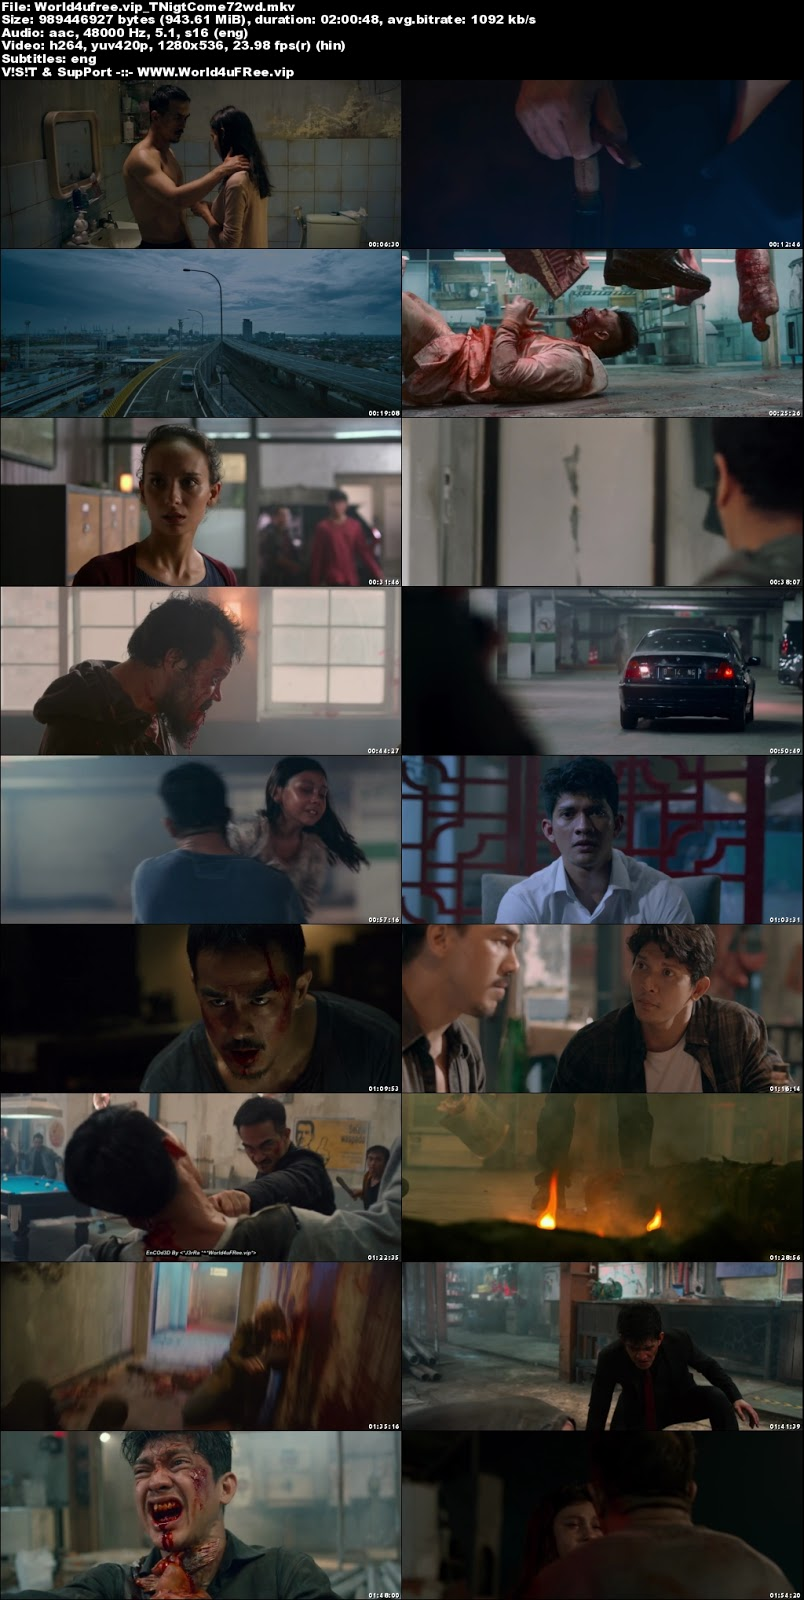 The Night Comes for Us 2018 Eng 720p HDRip 950Mb ESub x264 world4ufree.vip hollywood movie The Night Comes for Us 2018 english movie 720p BRRip blueray hdrip webrip The Night Comes for Us 2018 web-dl 720p free download or watch online at world4ufree.vip